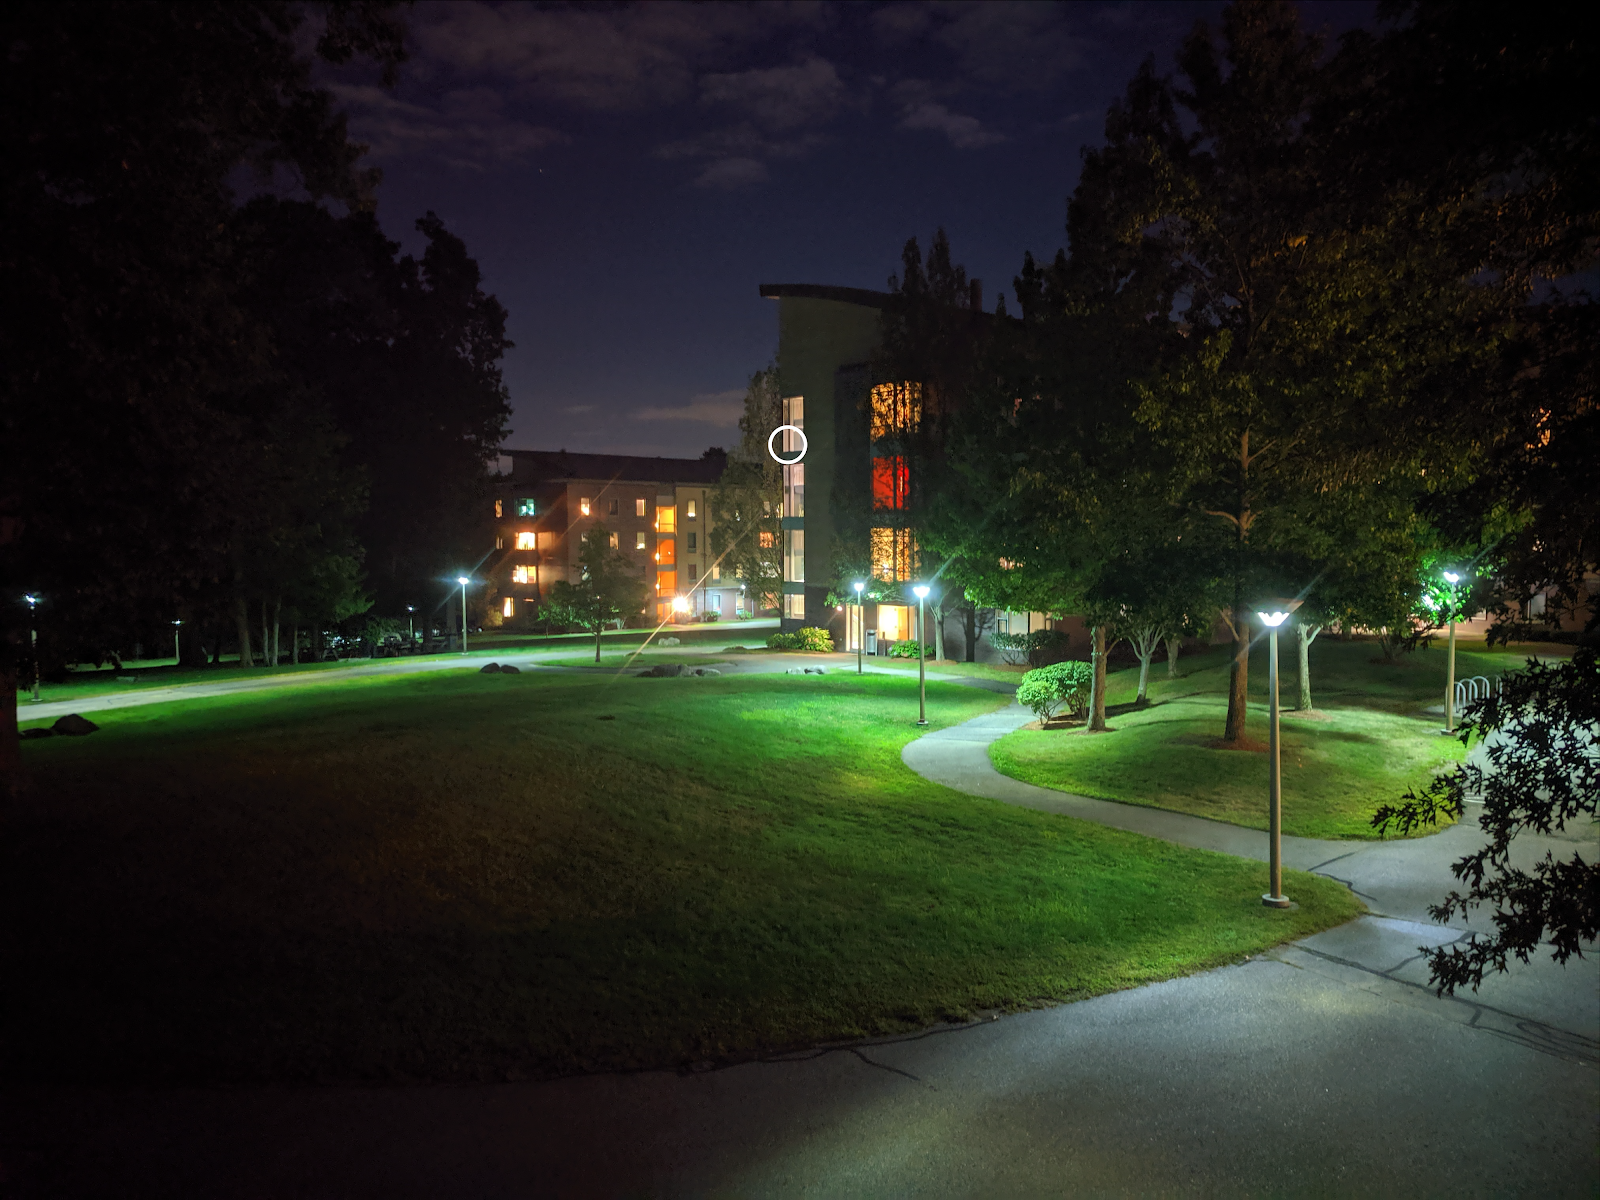 The outside of Olin's West Hall residence hall at night, with a stairwell on the fourth floor circled for emphasis.